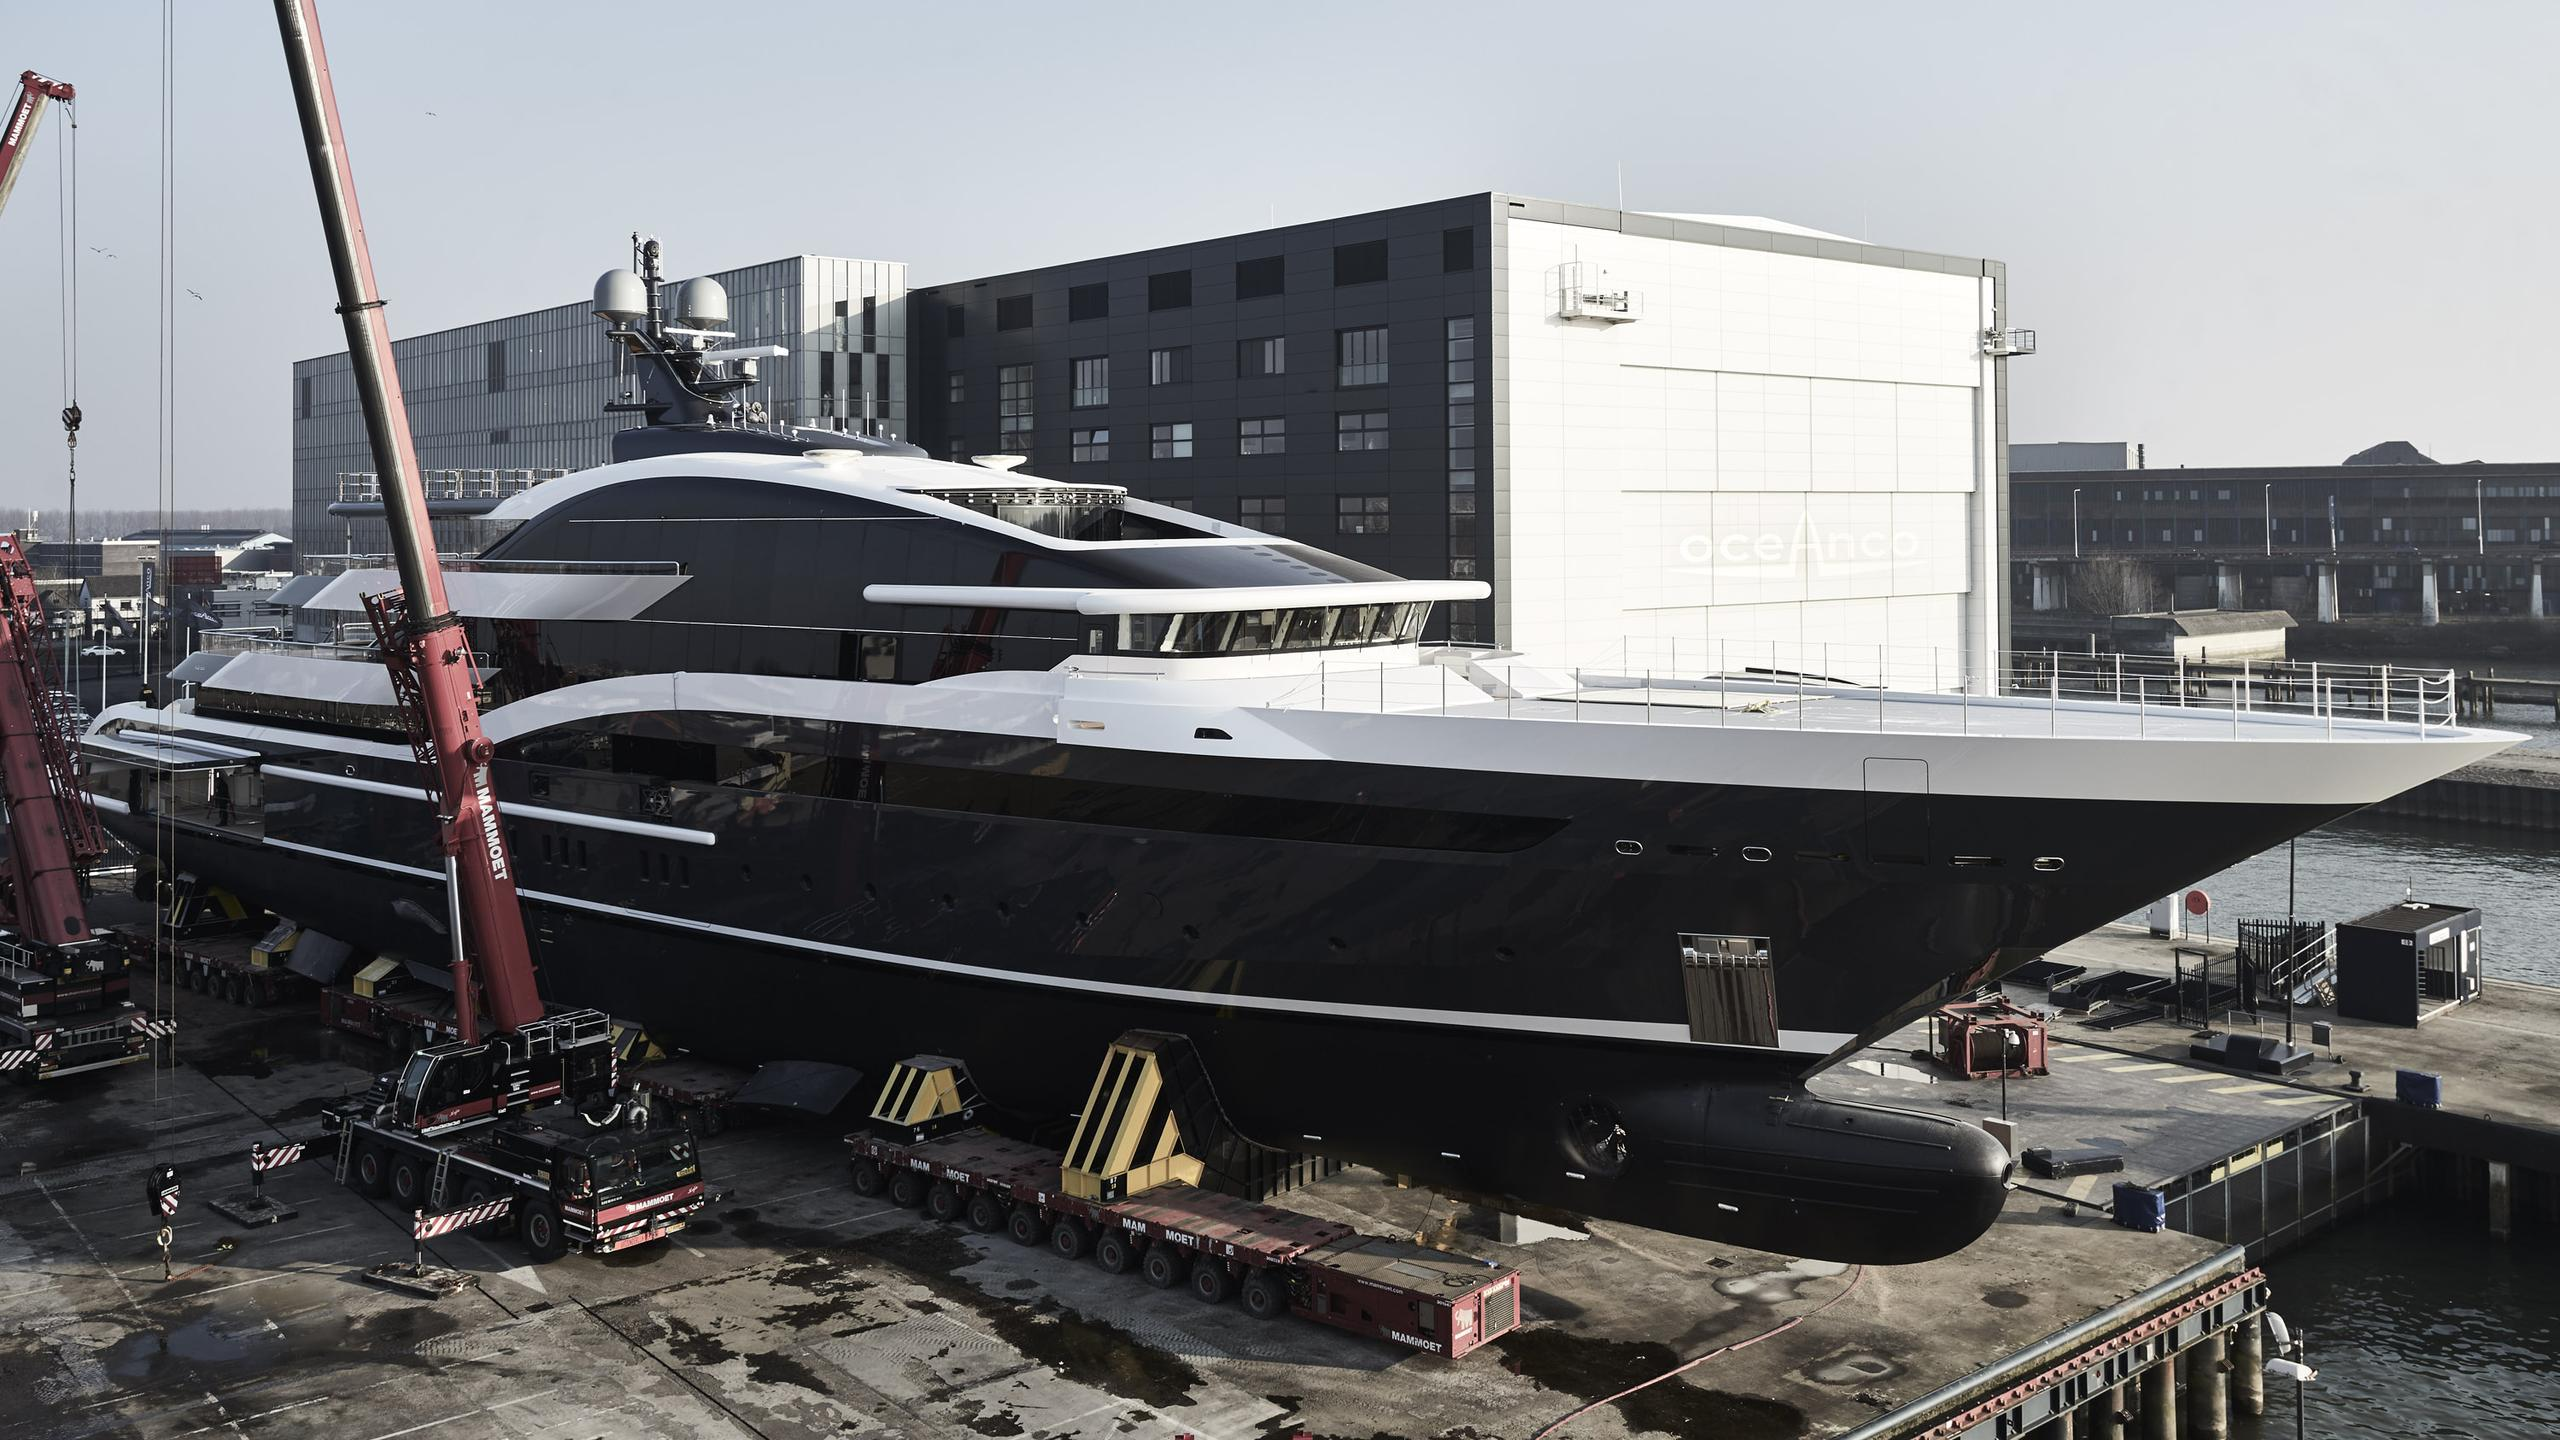 dar project shark y717 motoryacht oceanco 90m 2018 launch half profile